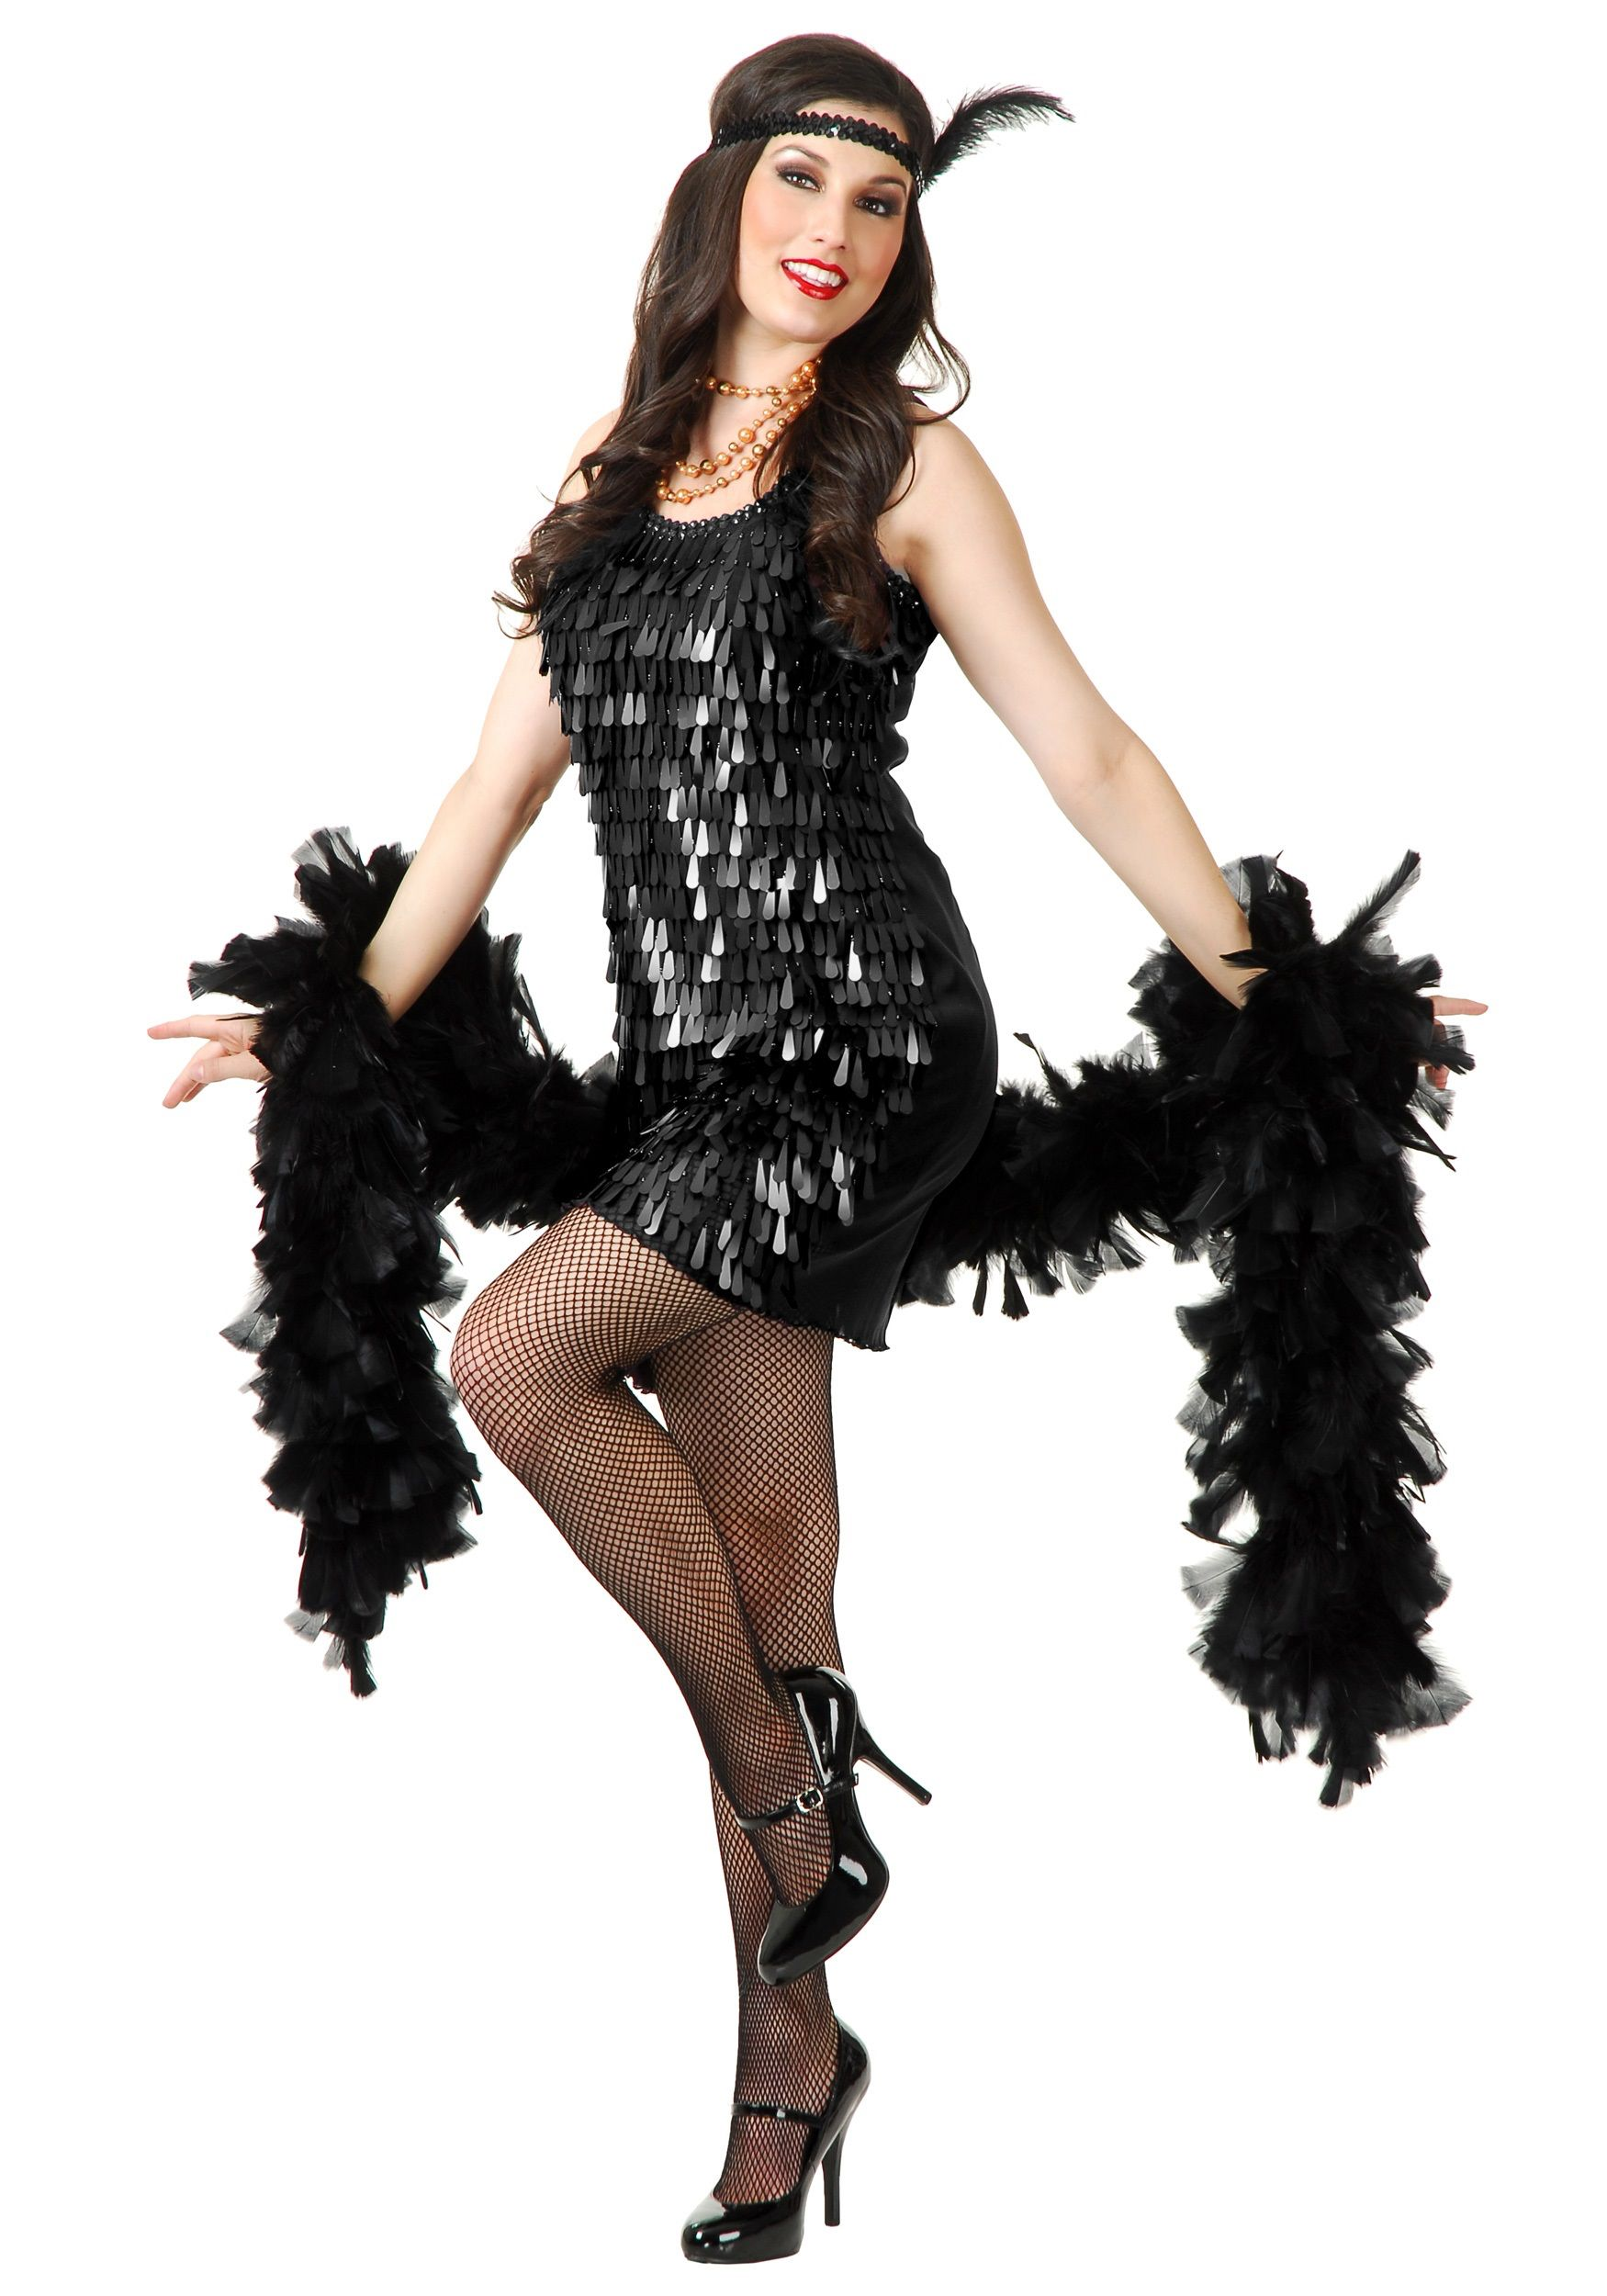 image from http://images.costumeideas/products/11353/1-1/black